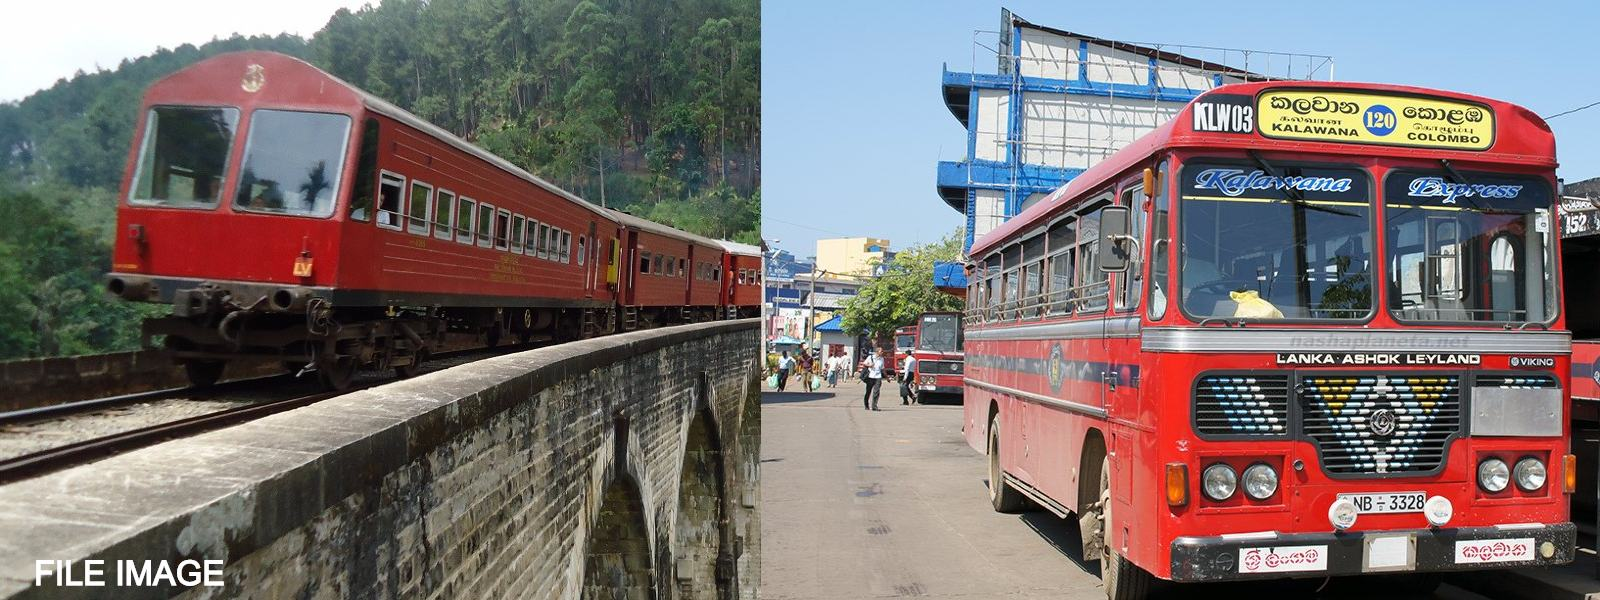 Transportation Services in Colombo restricted